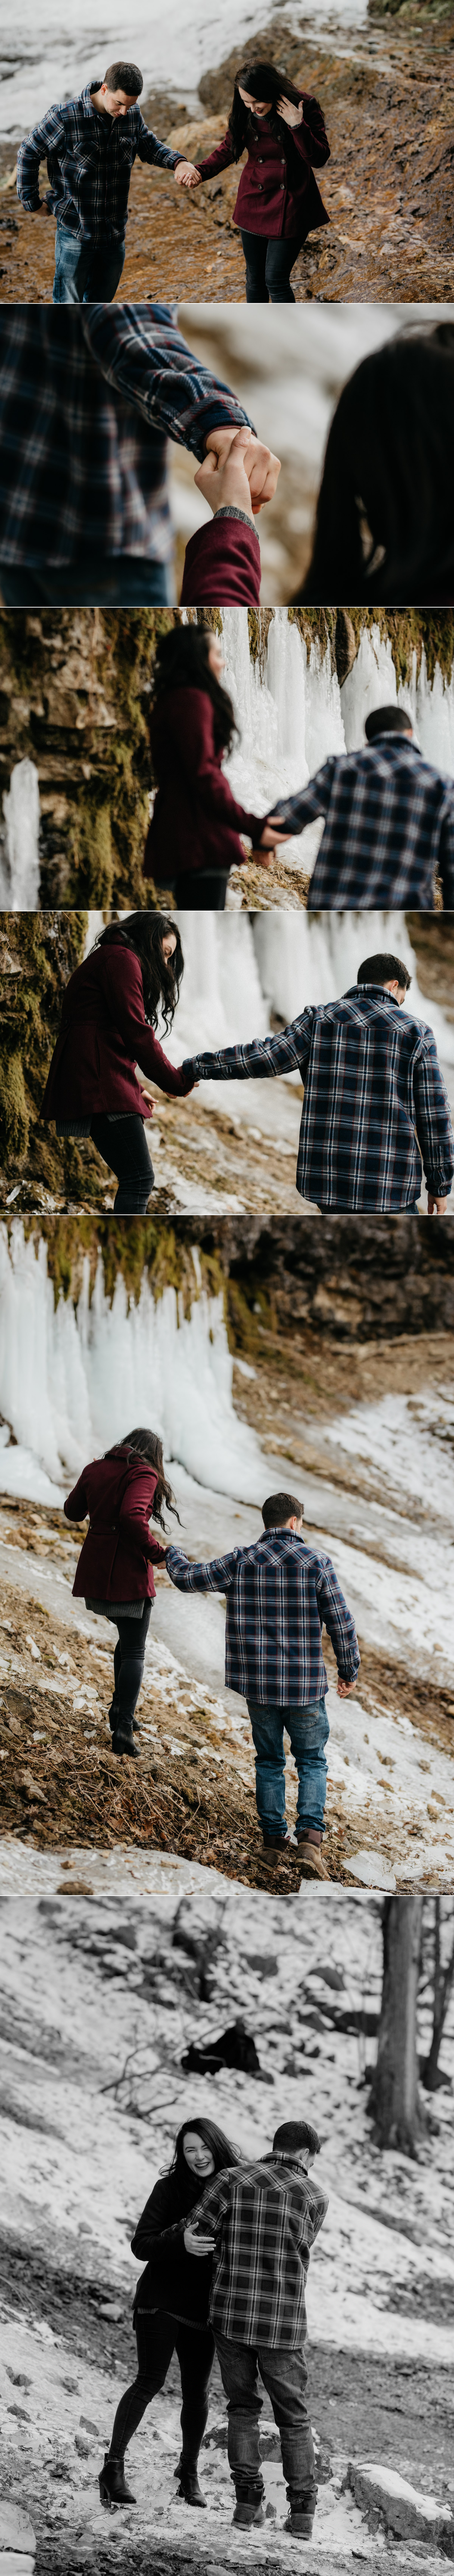 austin-minneapolis-elopement-photographer-willow-river-spain-france-costa-rica-best-family-affordable_0024.jpg